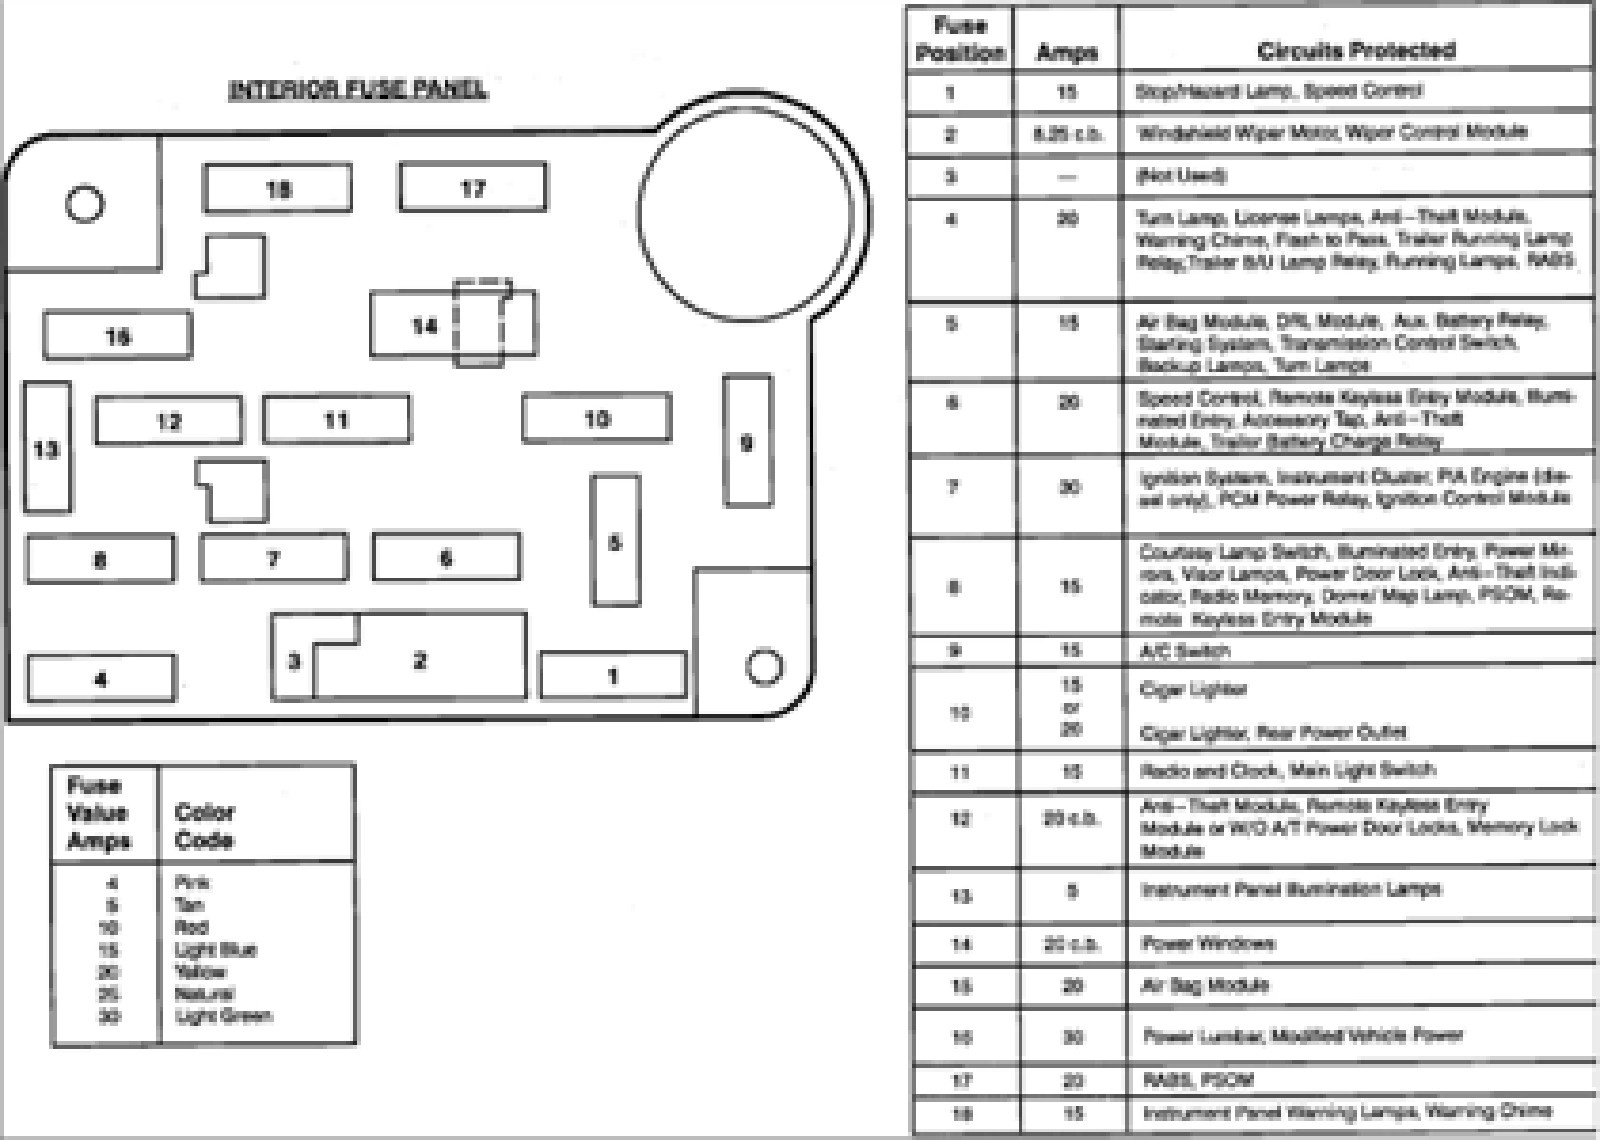 ford e 150 questions fuse diagram for a 1993 ford econoline van rh cargurus com ford e350 van fuse box diagram 1988 ford econoline van fuse box diagram